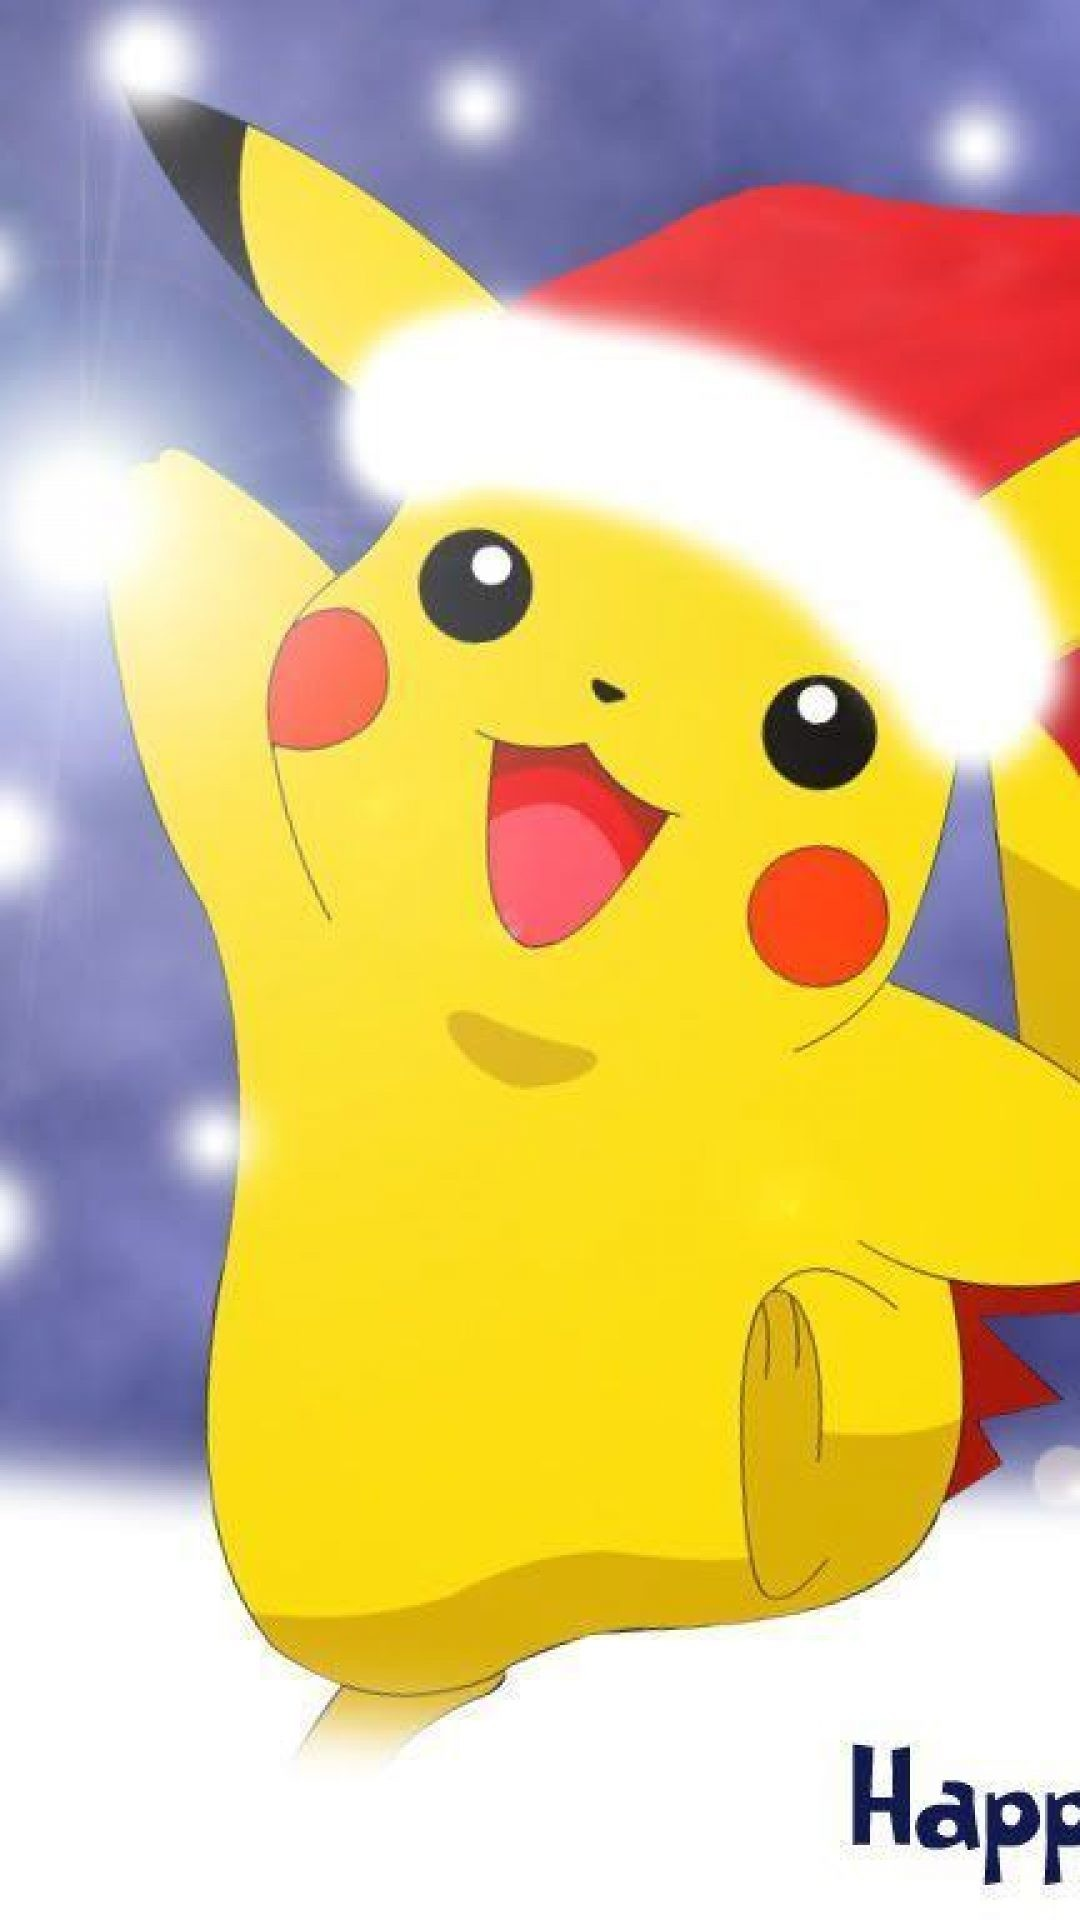 Cute Boy Wallpaper Mobile9 Pikachu Iphone Wallpaper 84 Images